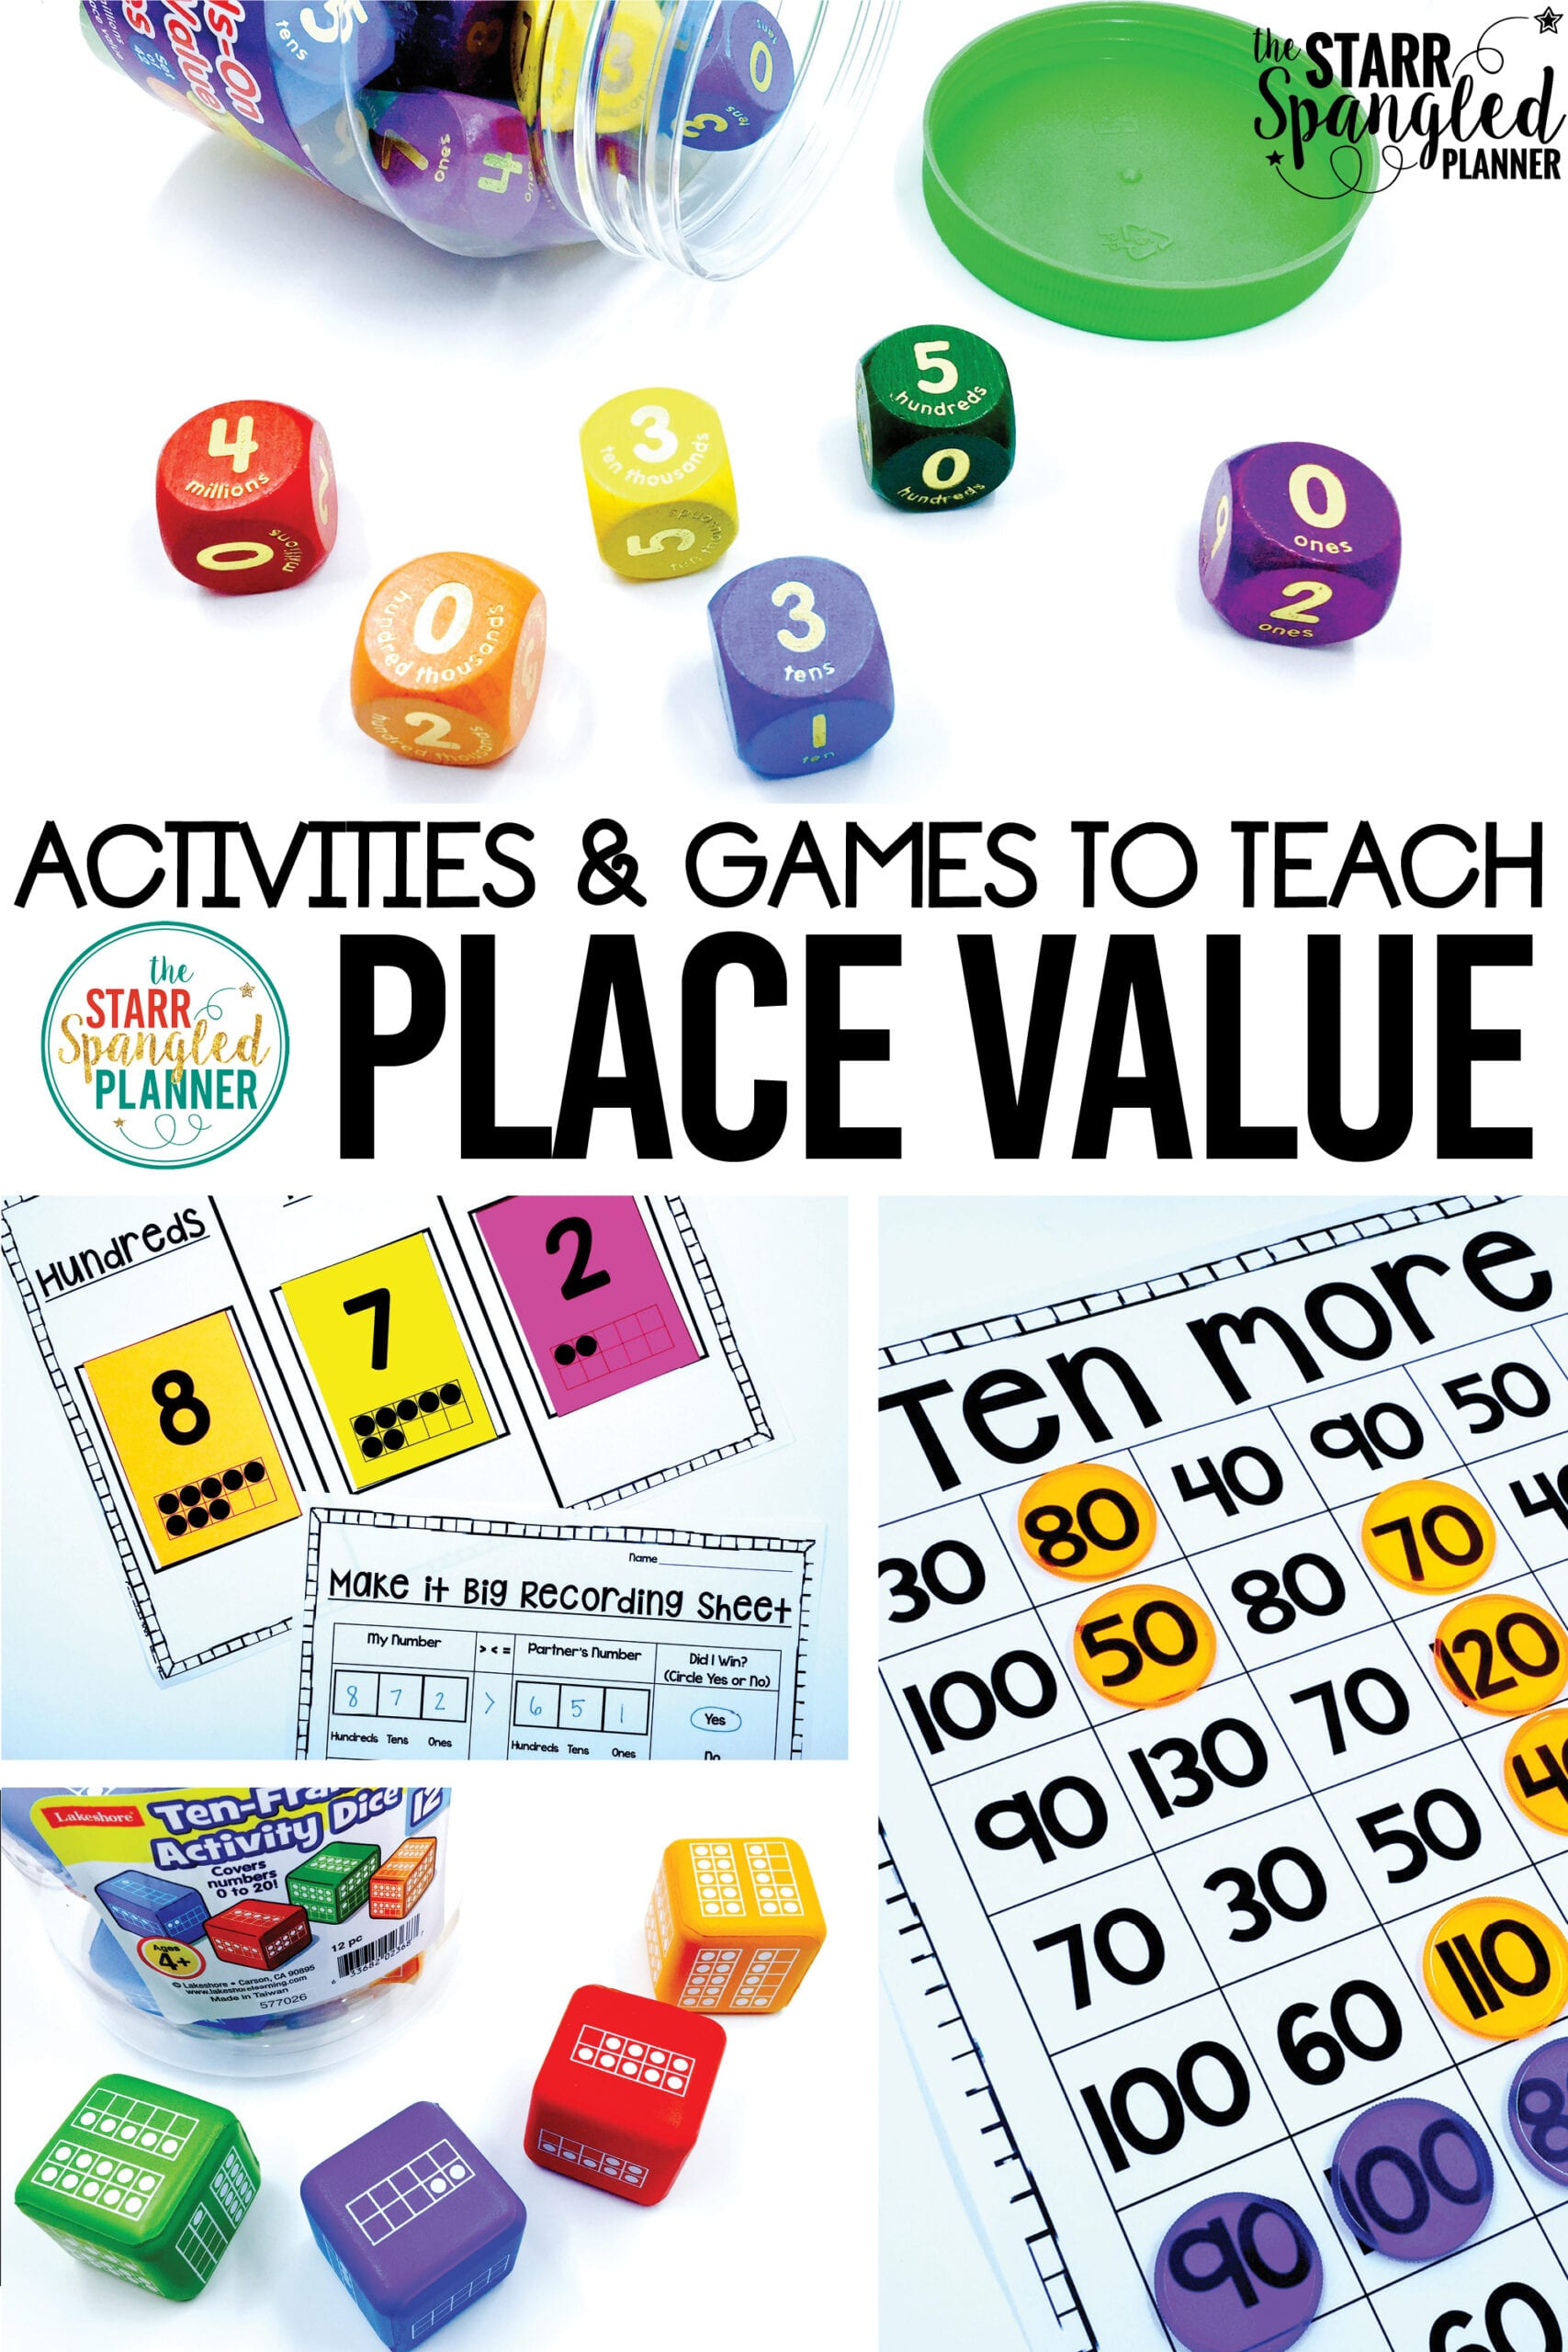 picture regarding Place Value Games Printable called Training Stage Price tag - Instruction with Jillian Starr